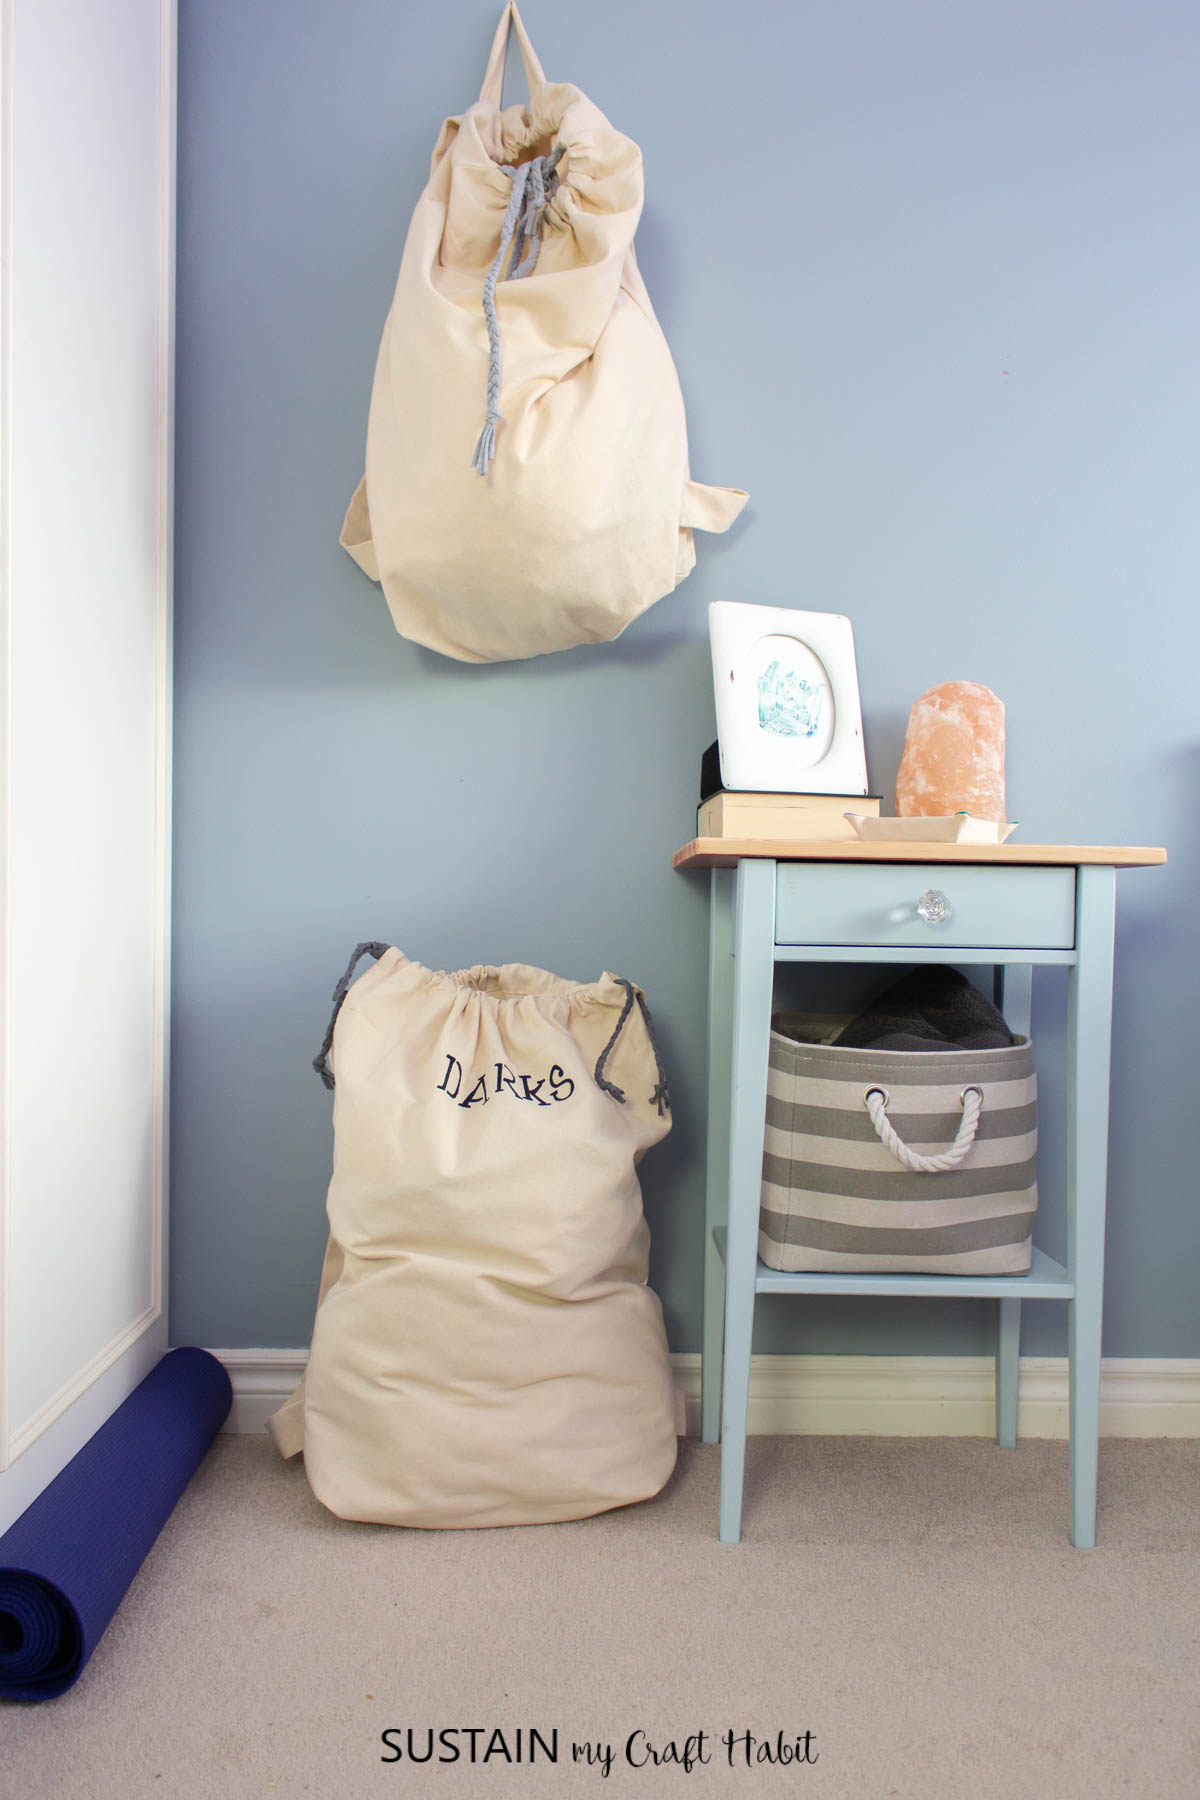 Laundry bags on the floor and hanging on a wall.